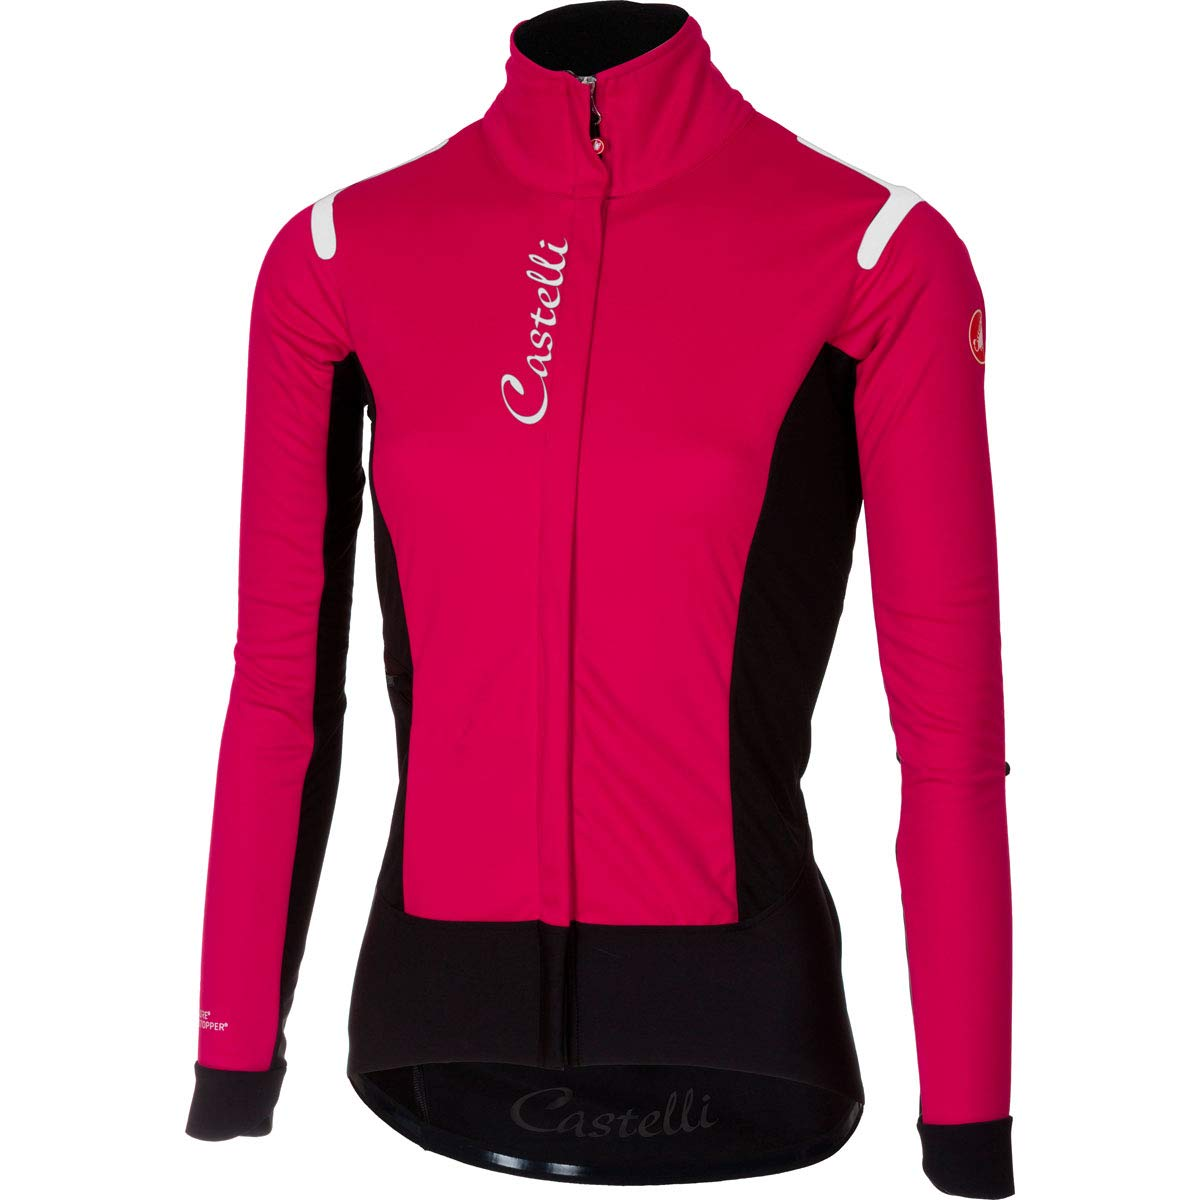 CastelliアルファRos Jacket – Women 's B07GXN71XF  Electric Magenta/Black Large